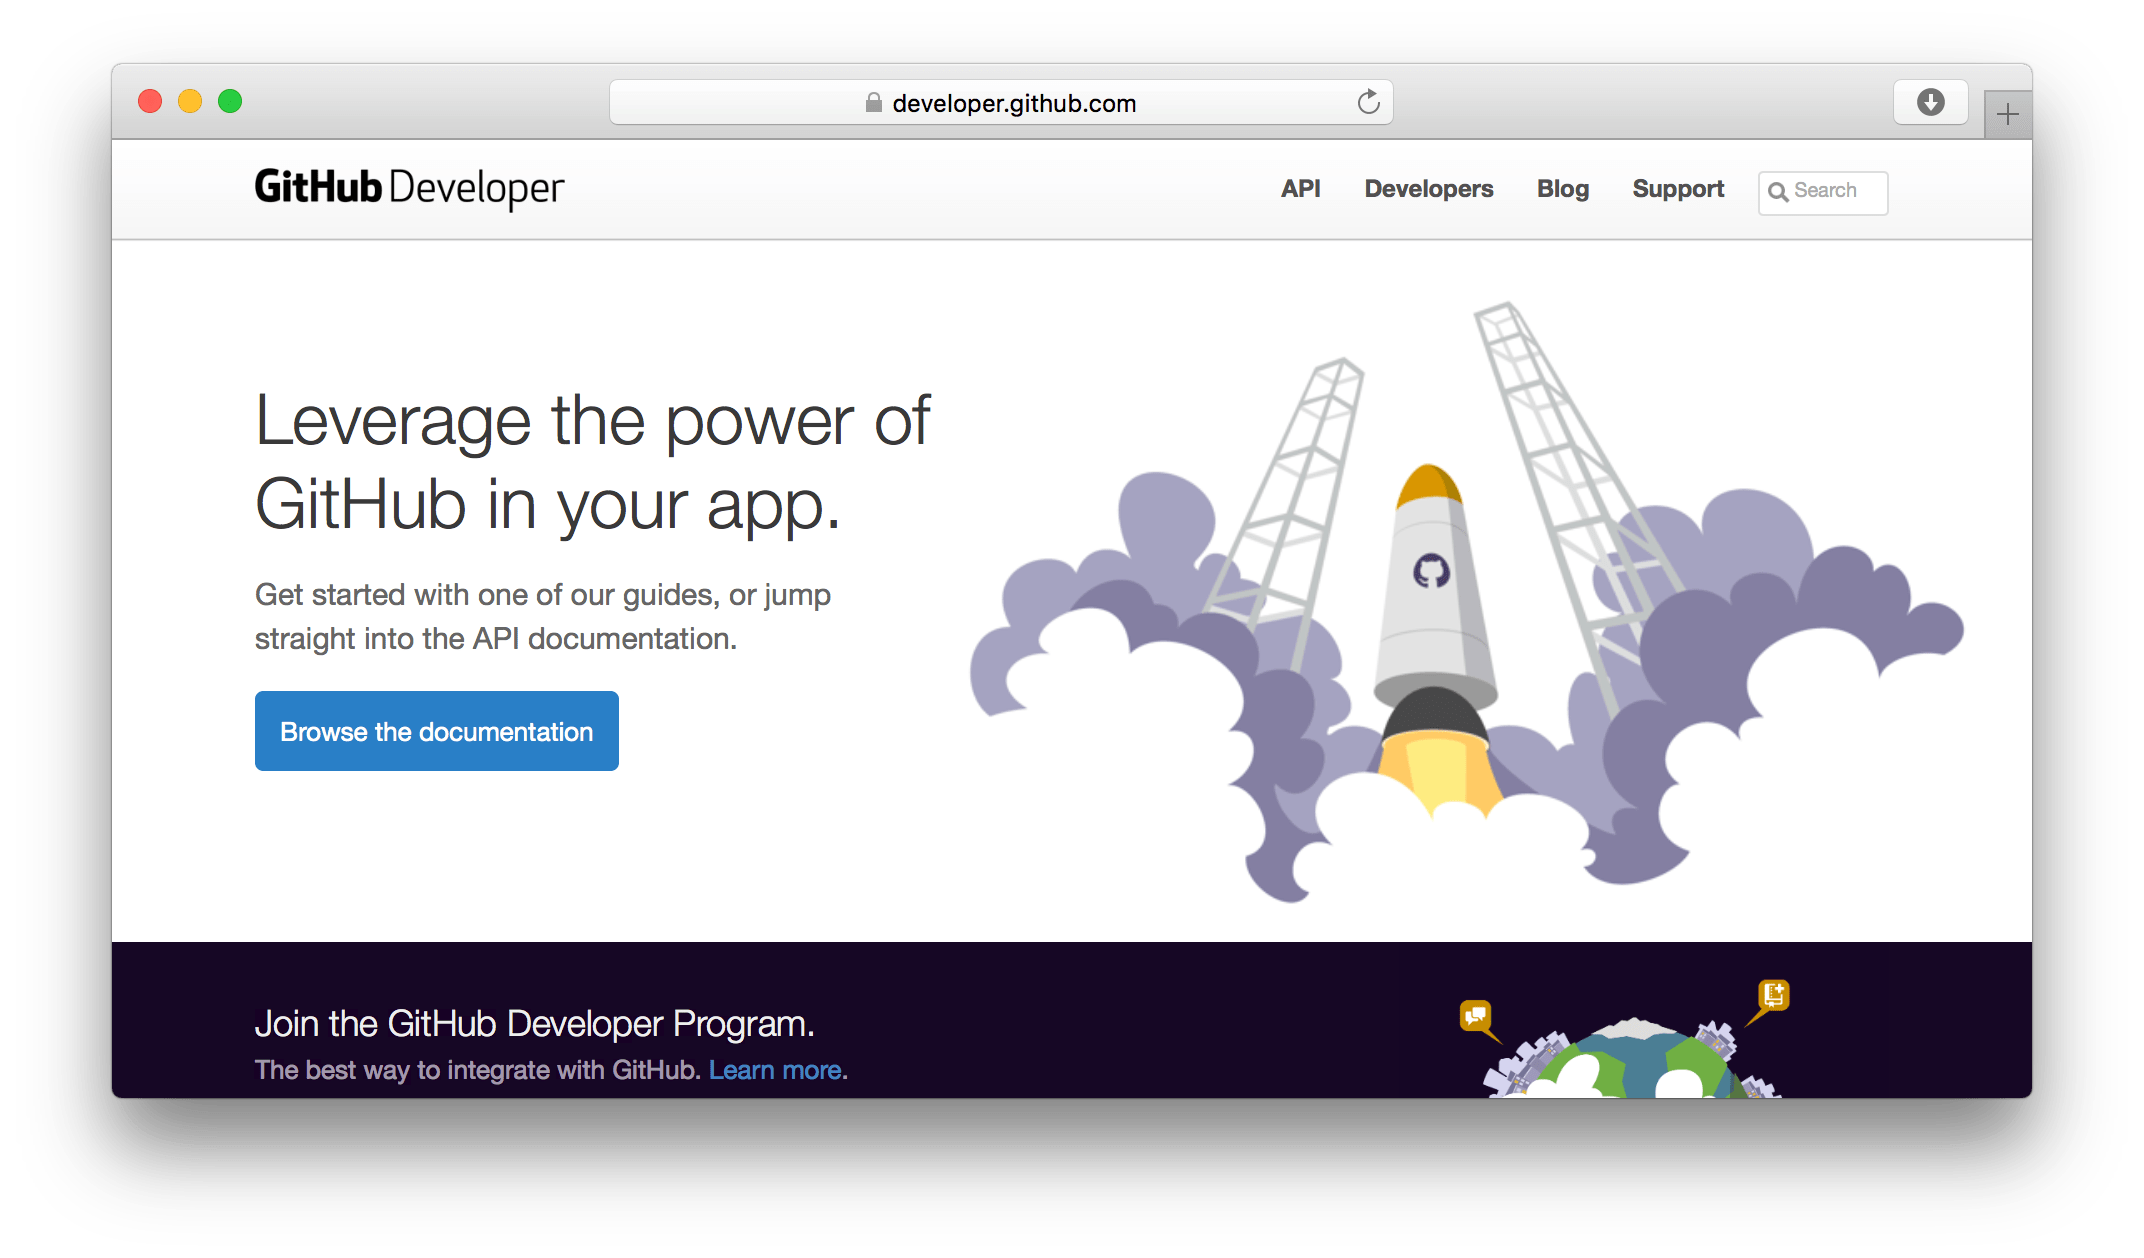 GitHub developer site screenshot